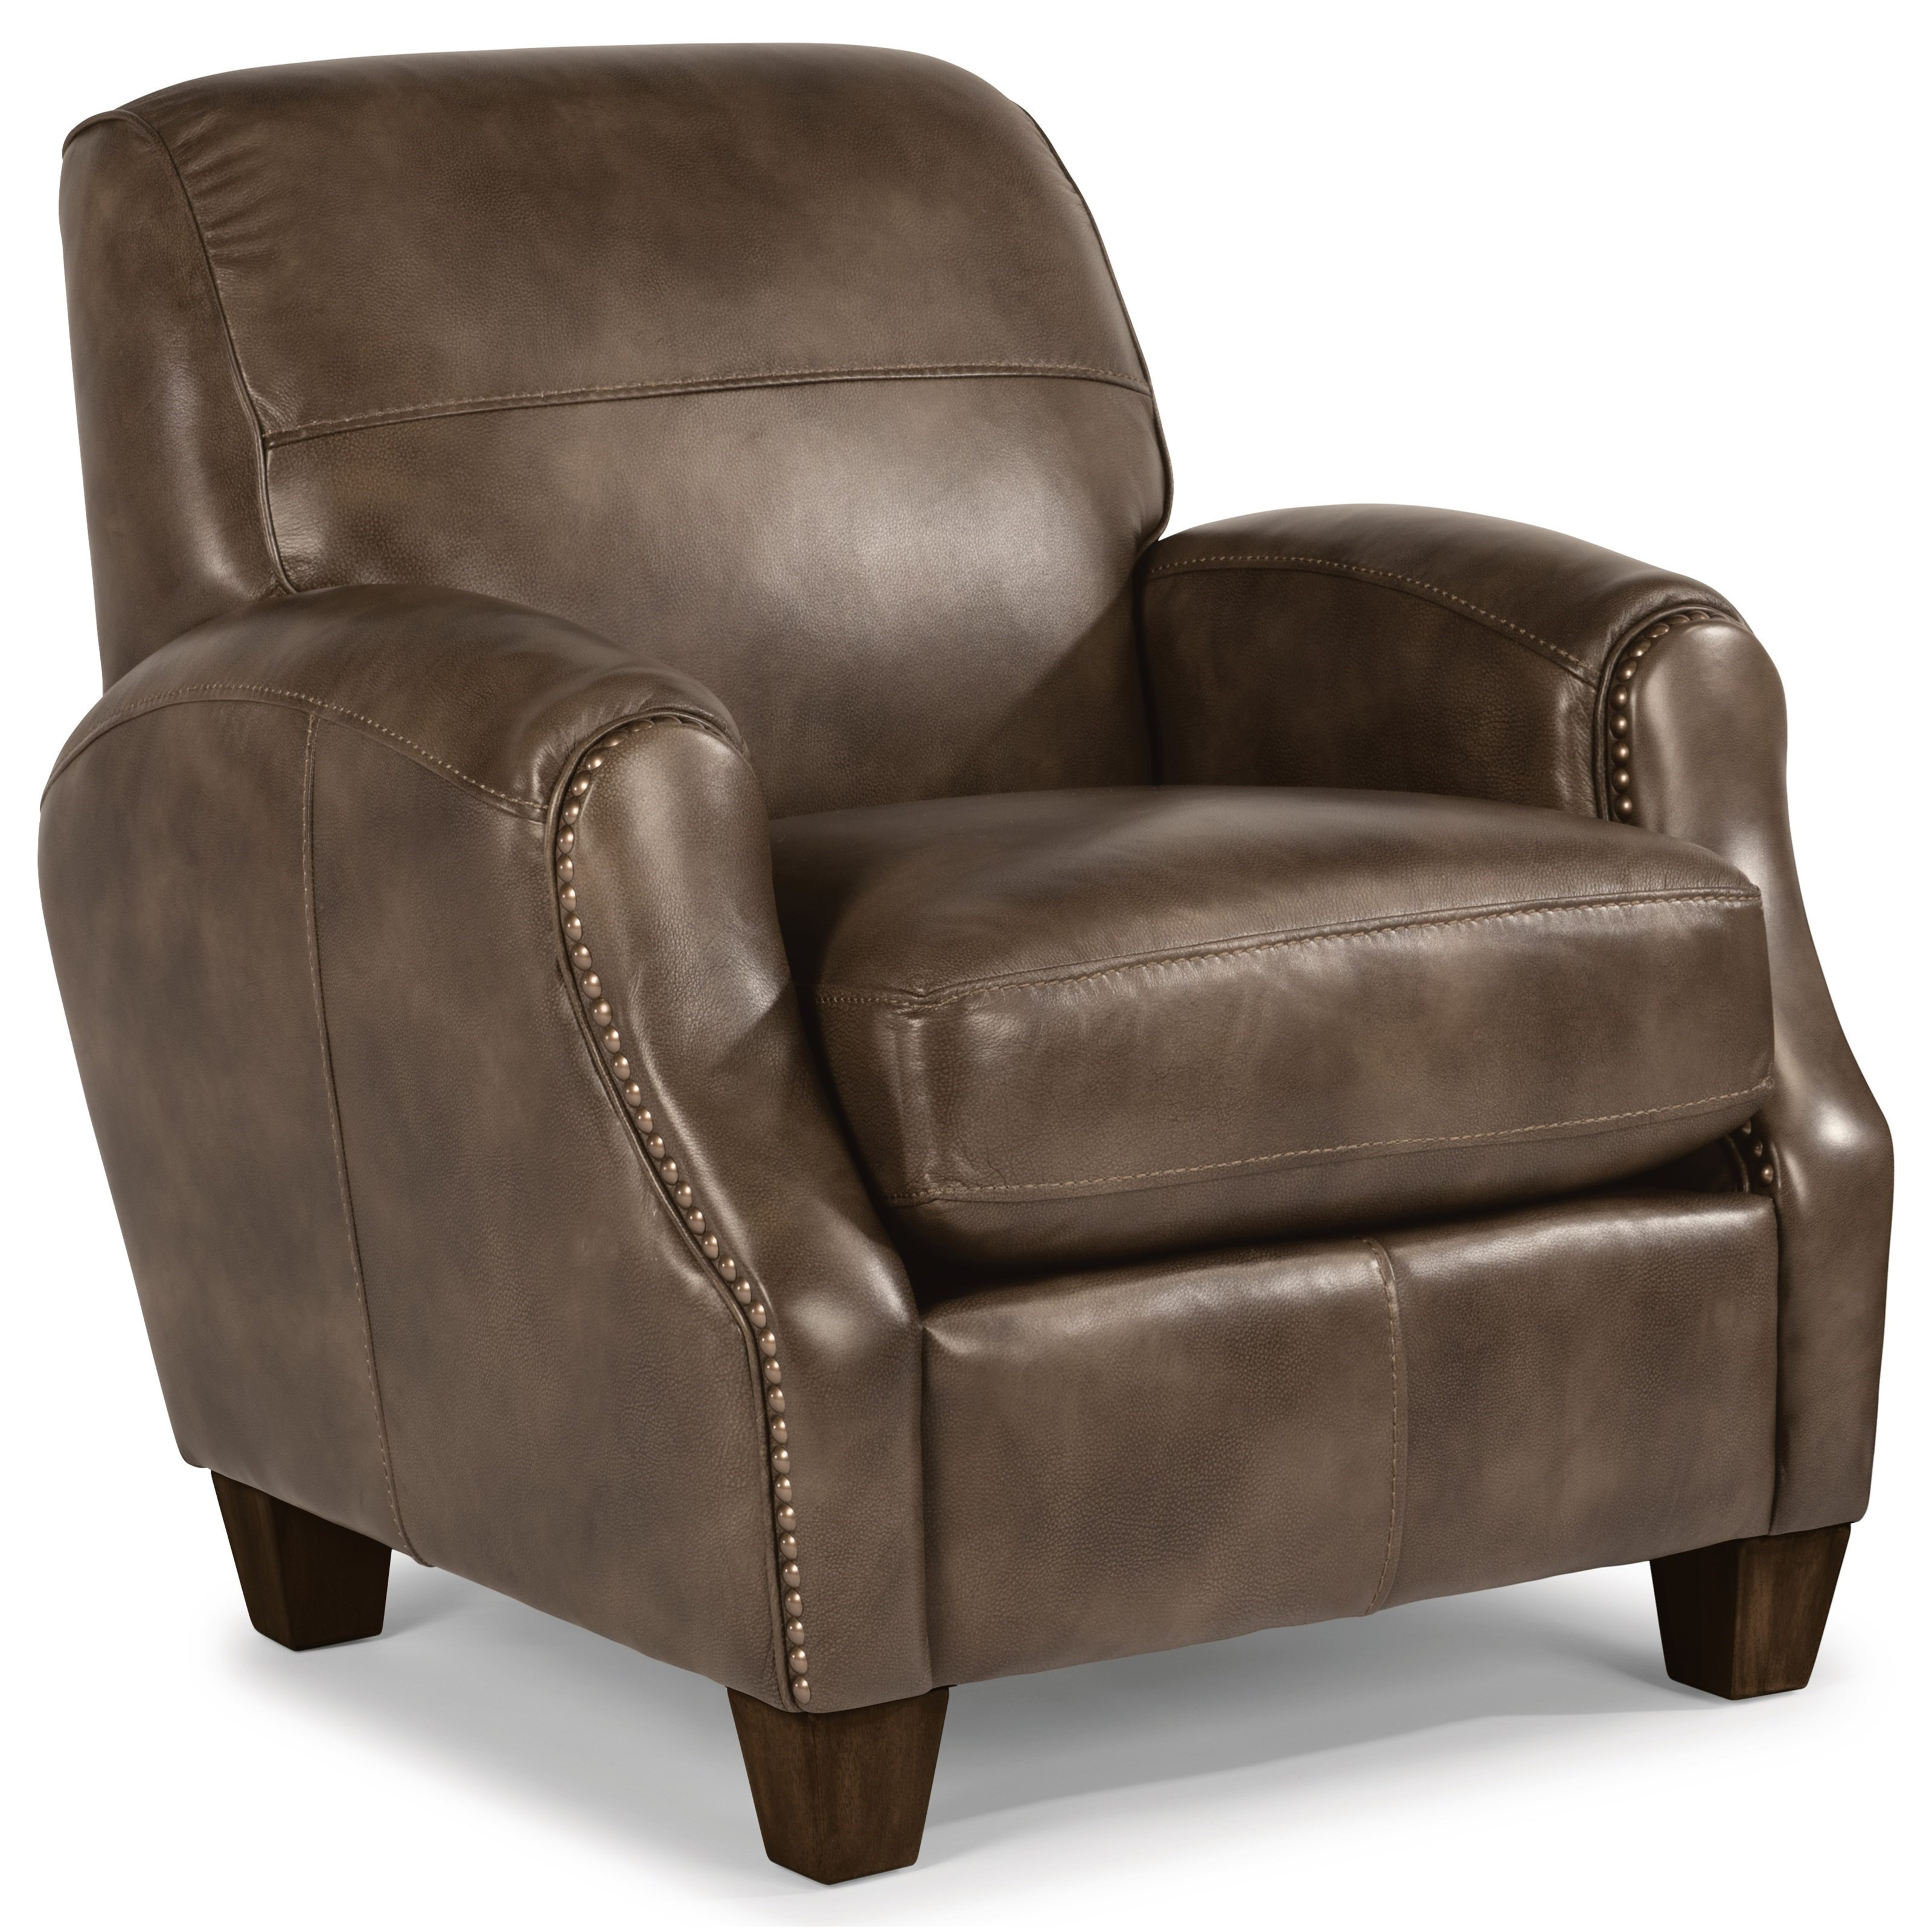 Flexsteel Accents Kittery Chair  - Item Number: B3122-10-469-04